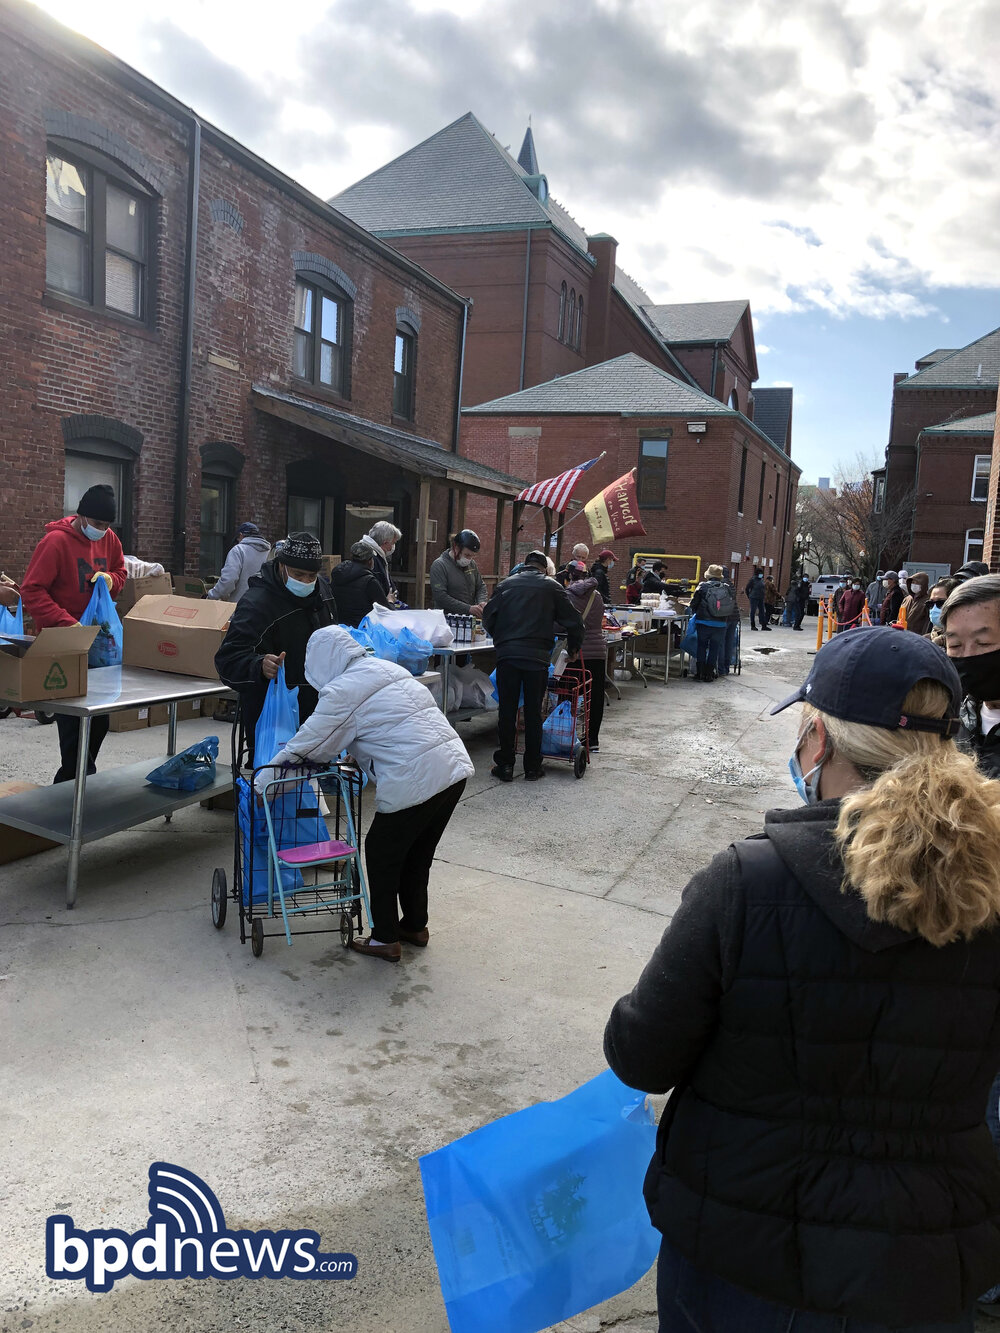 Bureau of Community Engagement Teams Up with Local Parish to Distribute Groceries to Those in Need in Charlestown